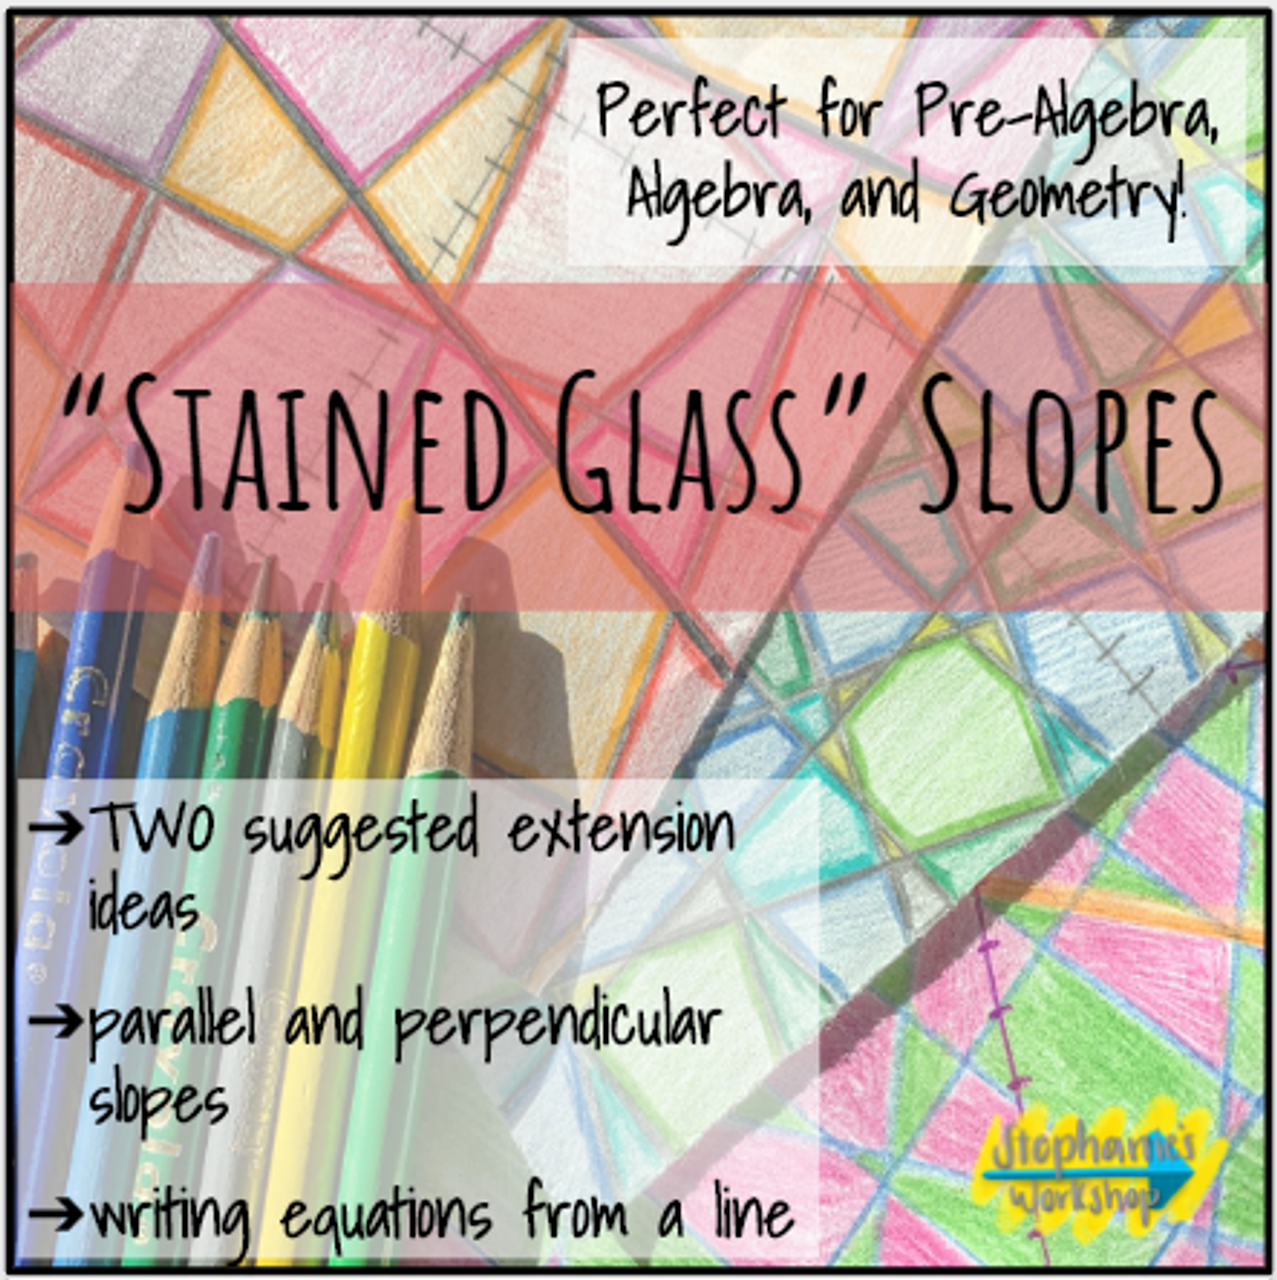 Stained Glass Slopes